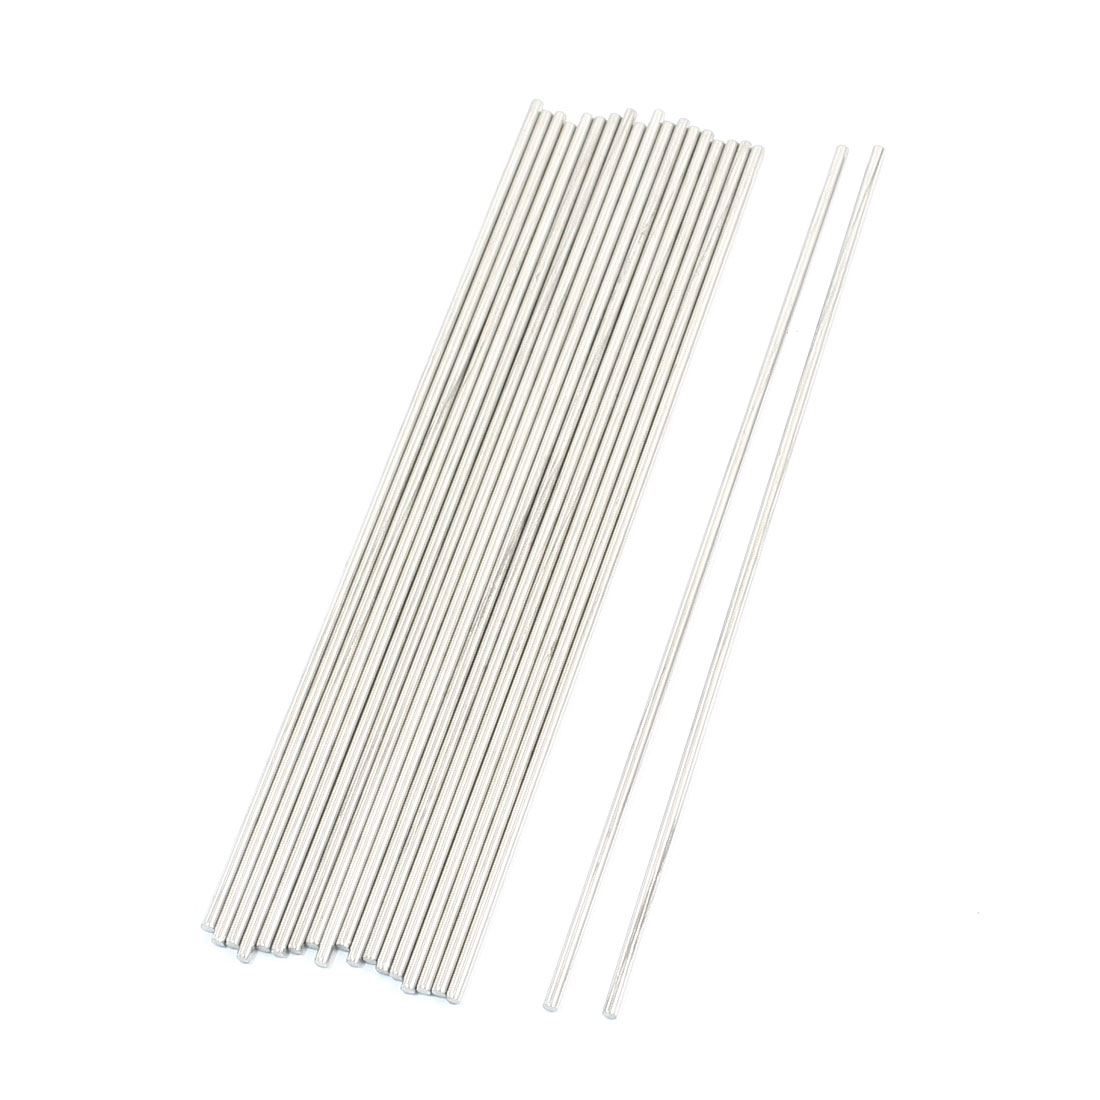 20PCS RC Helicopter Repairing Parts Round Rods 170mm x 2.5mm